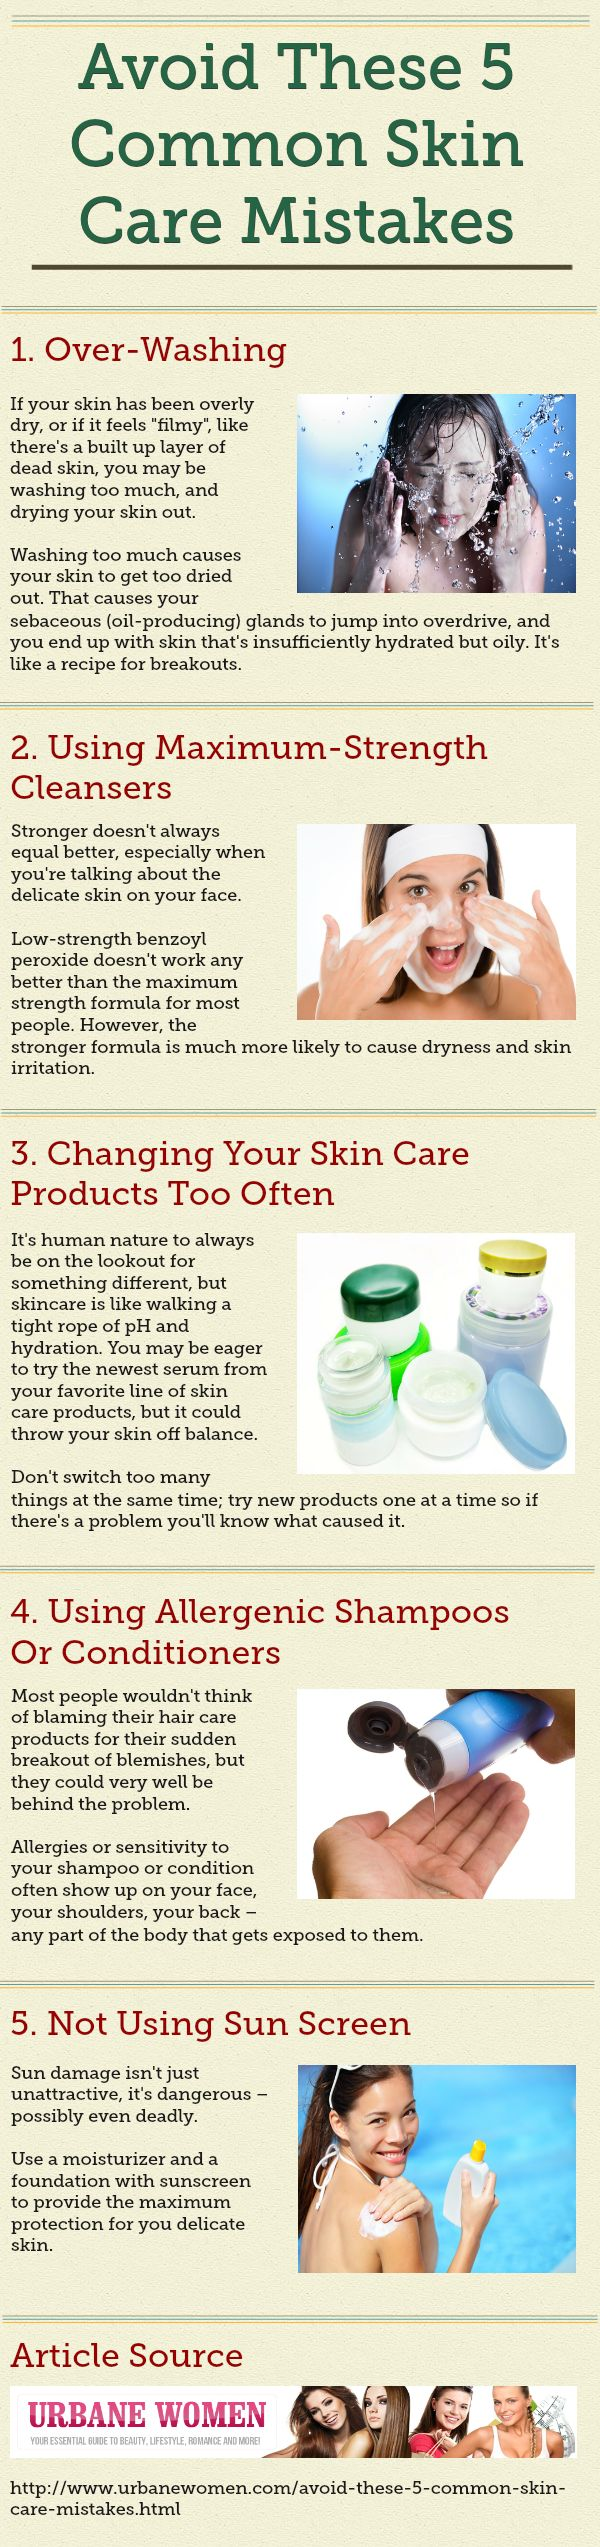 Avoid These 5 Common Skin Care Mistakes! For more health tips and anti-aging products, visit www.nuvosa.com